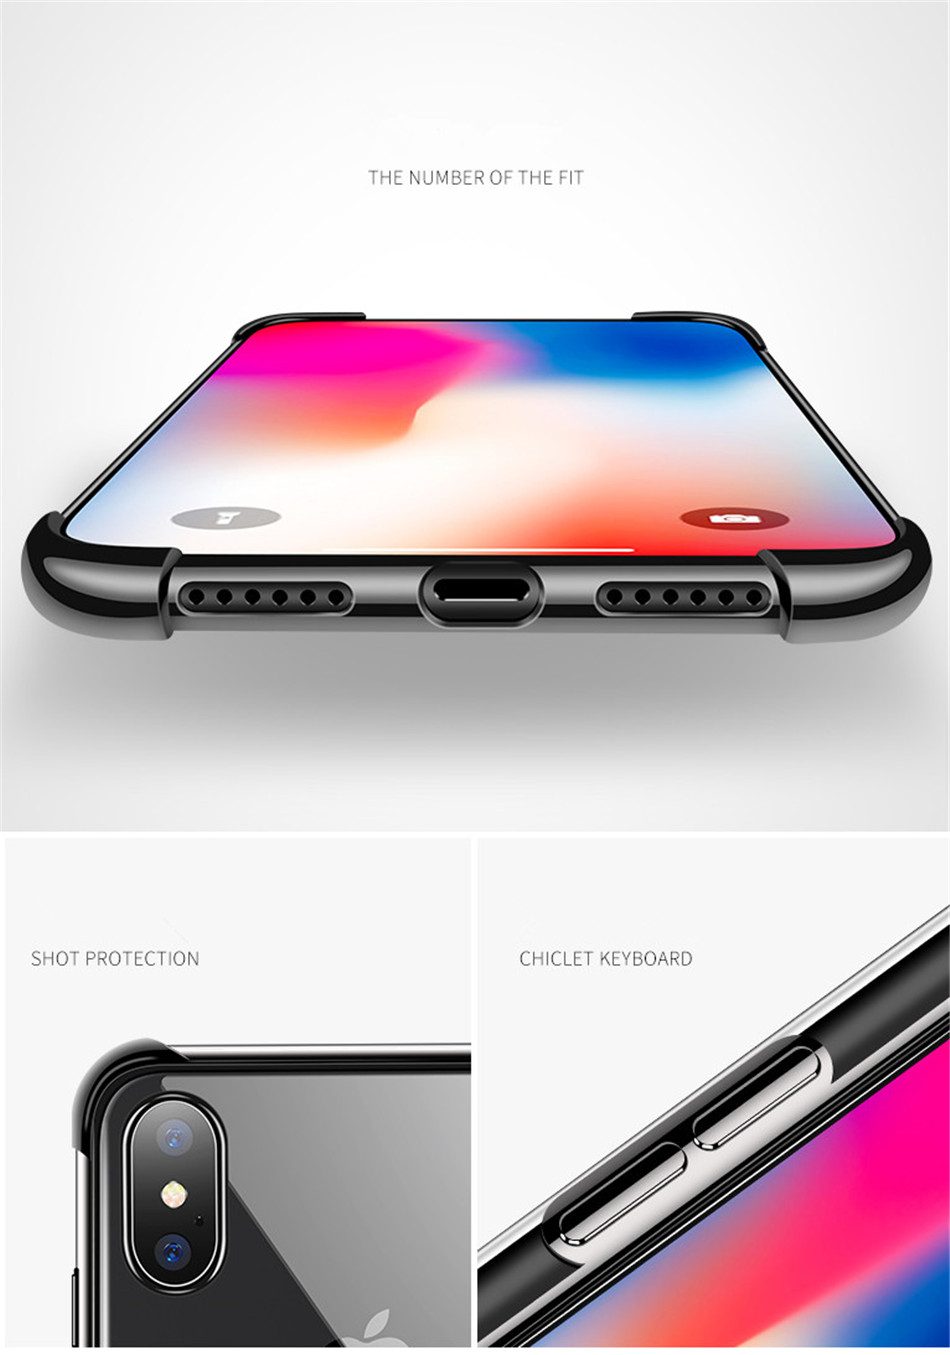 He504cf0cb413404e8401d88ce4fe1793d - USLION Shockproof Armor Clear Case For iPhone 11 Pro Max XS Max XR X 8 7 6 6s Plus 5 5s SE Transparent Phone Cases Airbag Cover